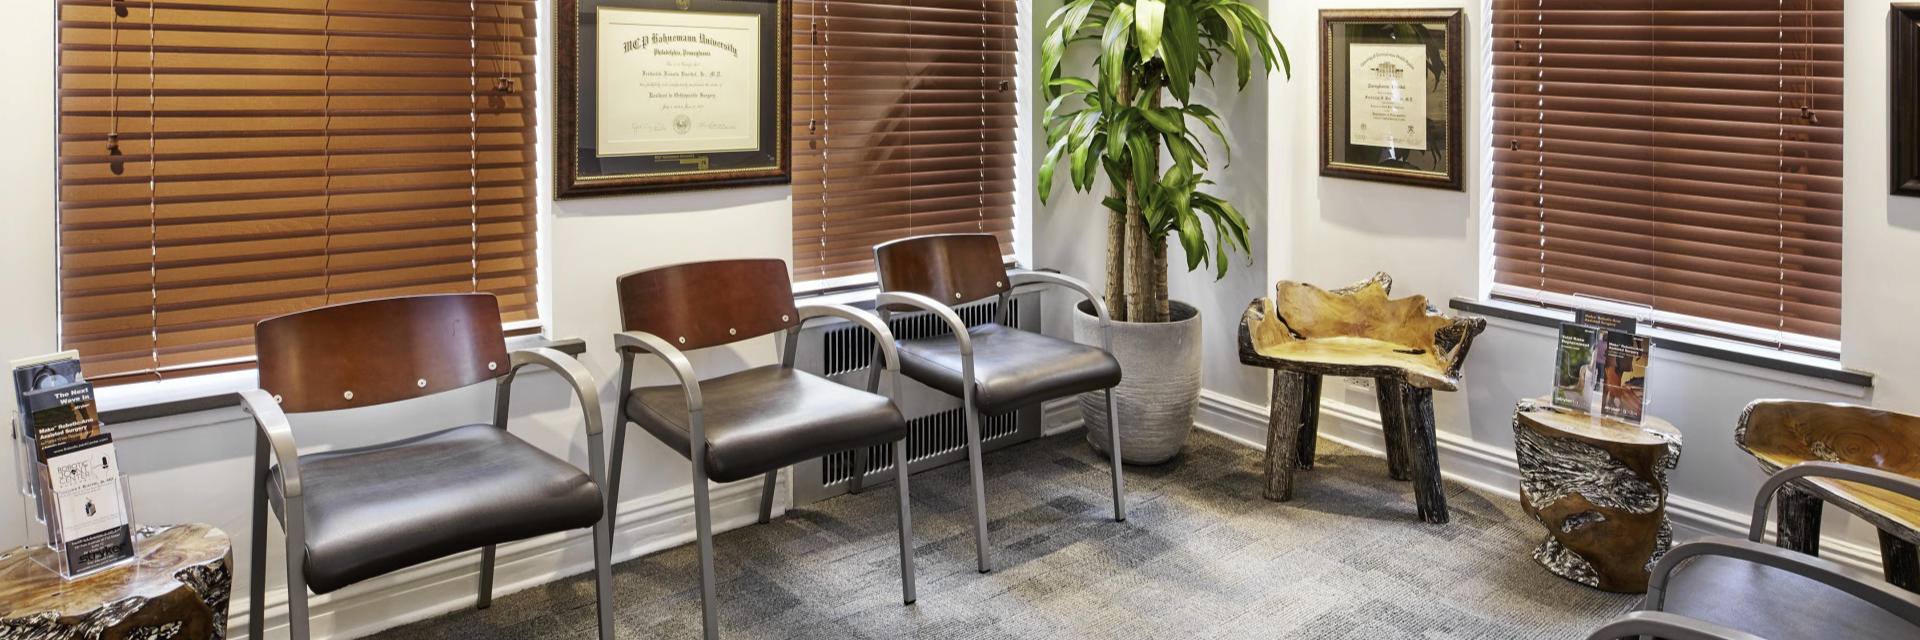 waiting area at Robotic Joint Center